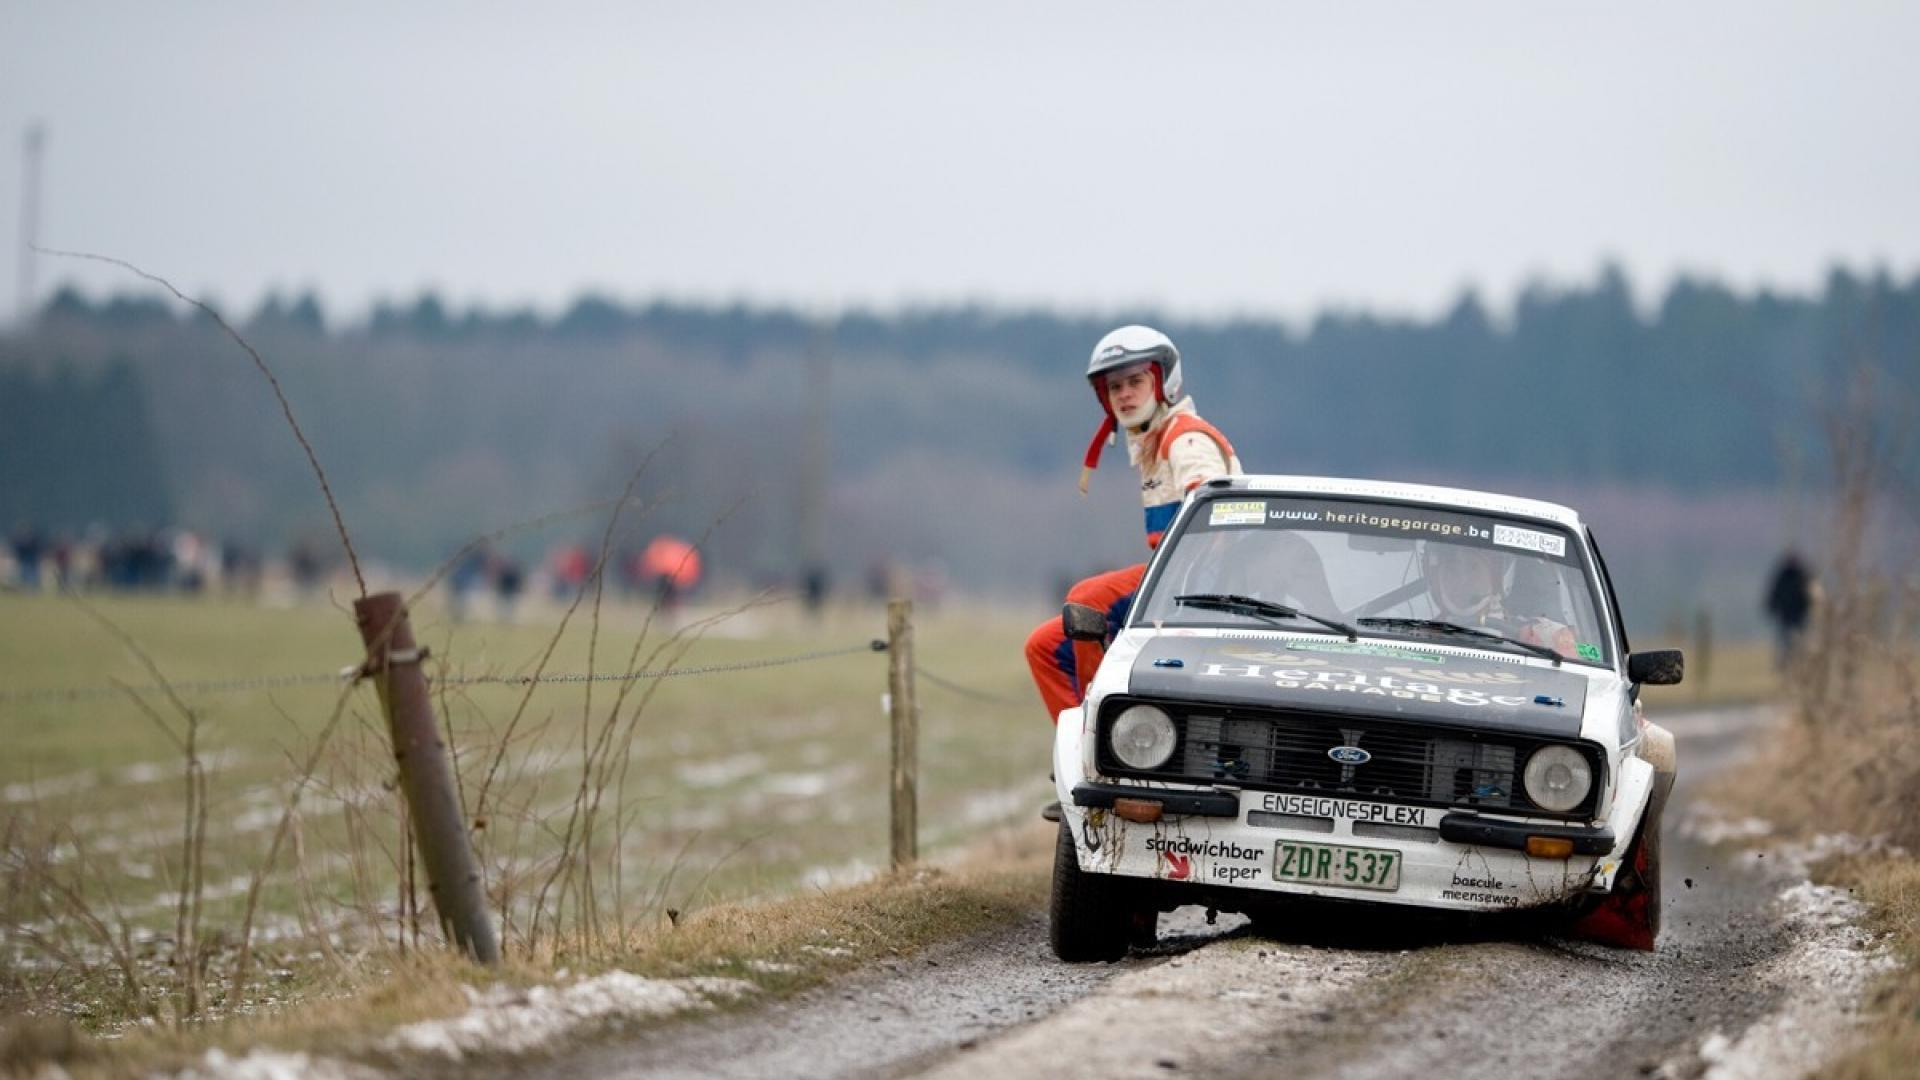 Cars rally ford escort races racing car wallpapers